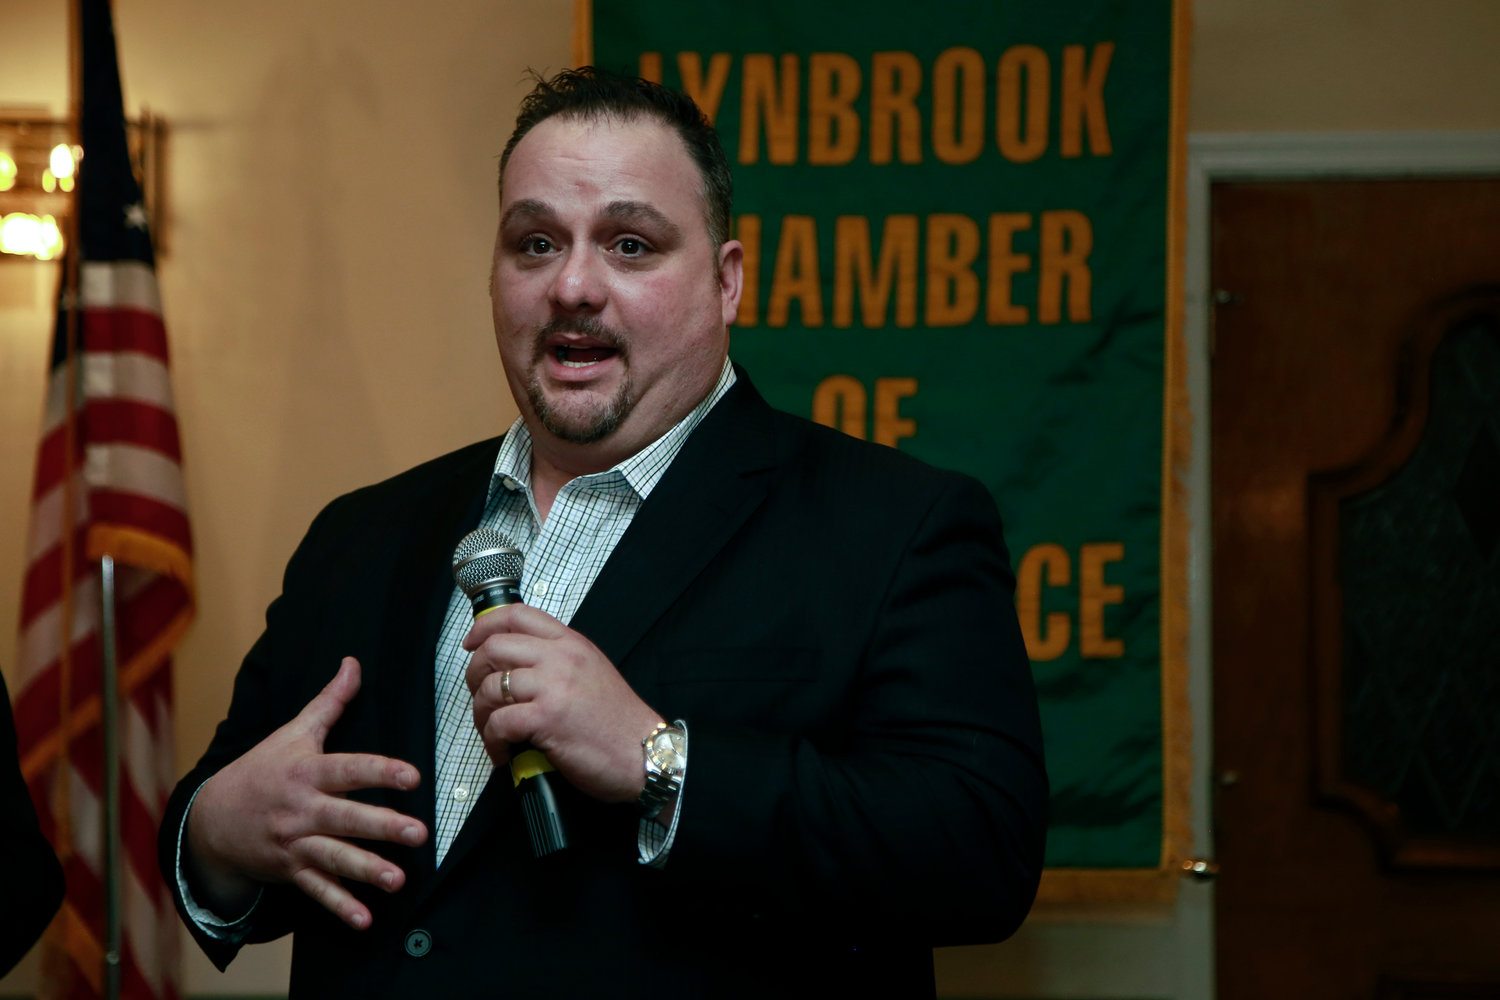 Bryan Lanzello of Lanzello Roofing & Remodeling was also honored at the event.